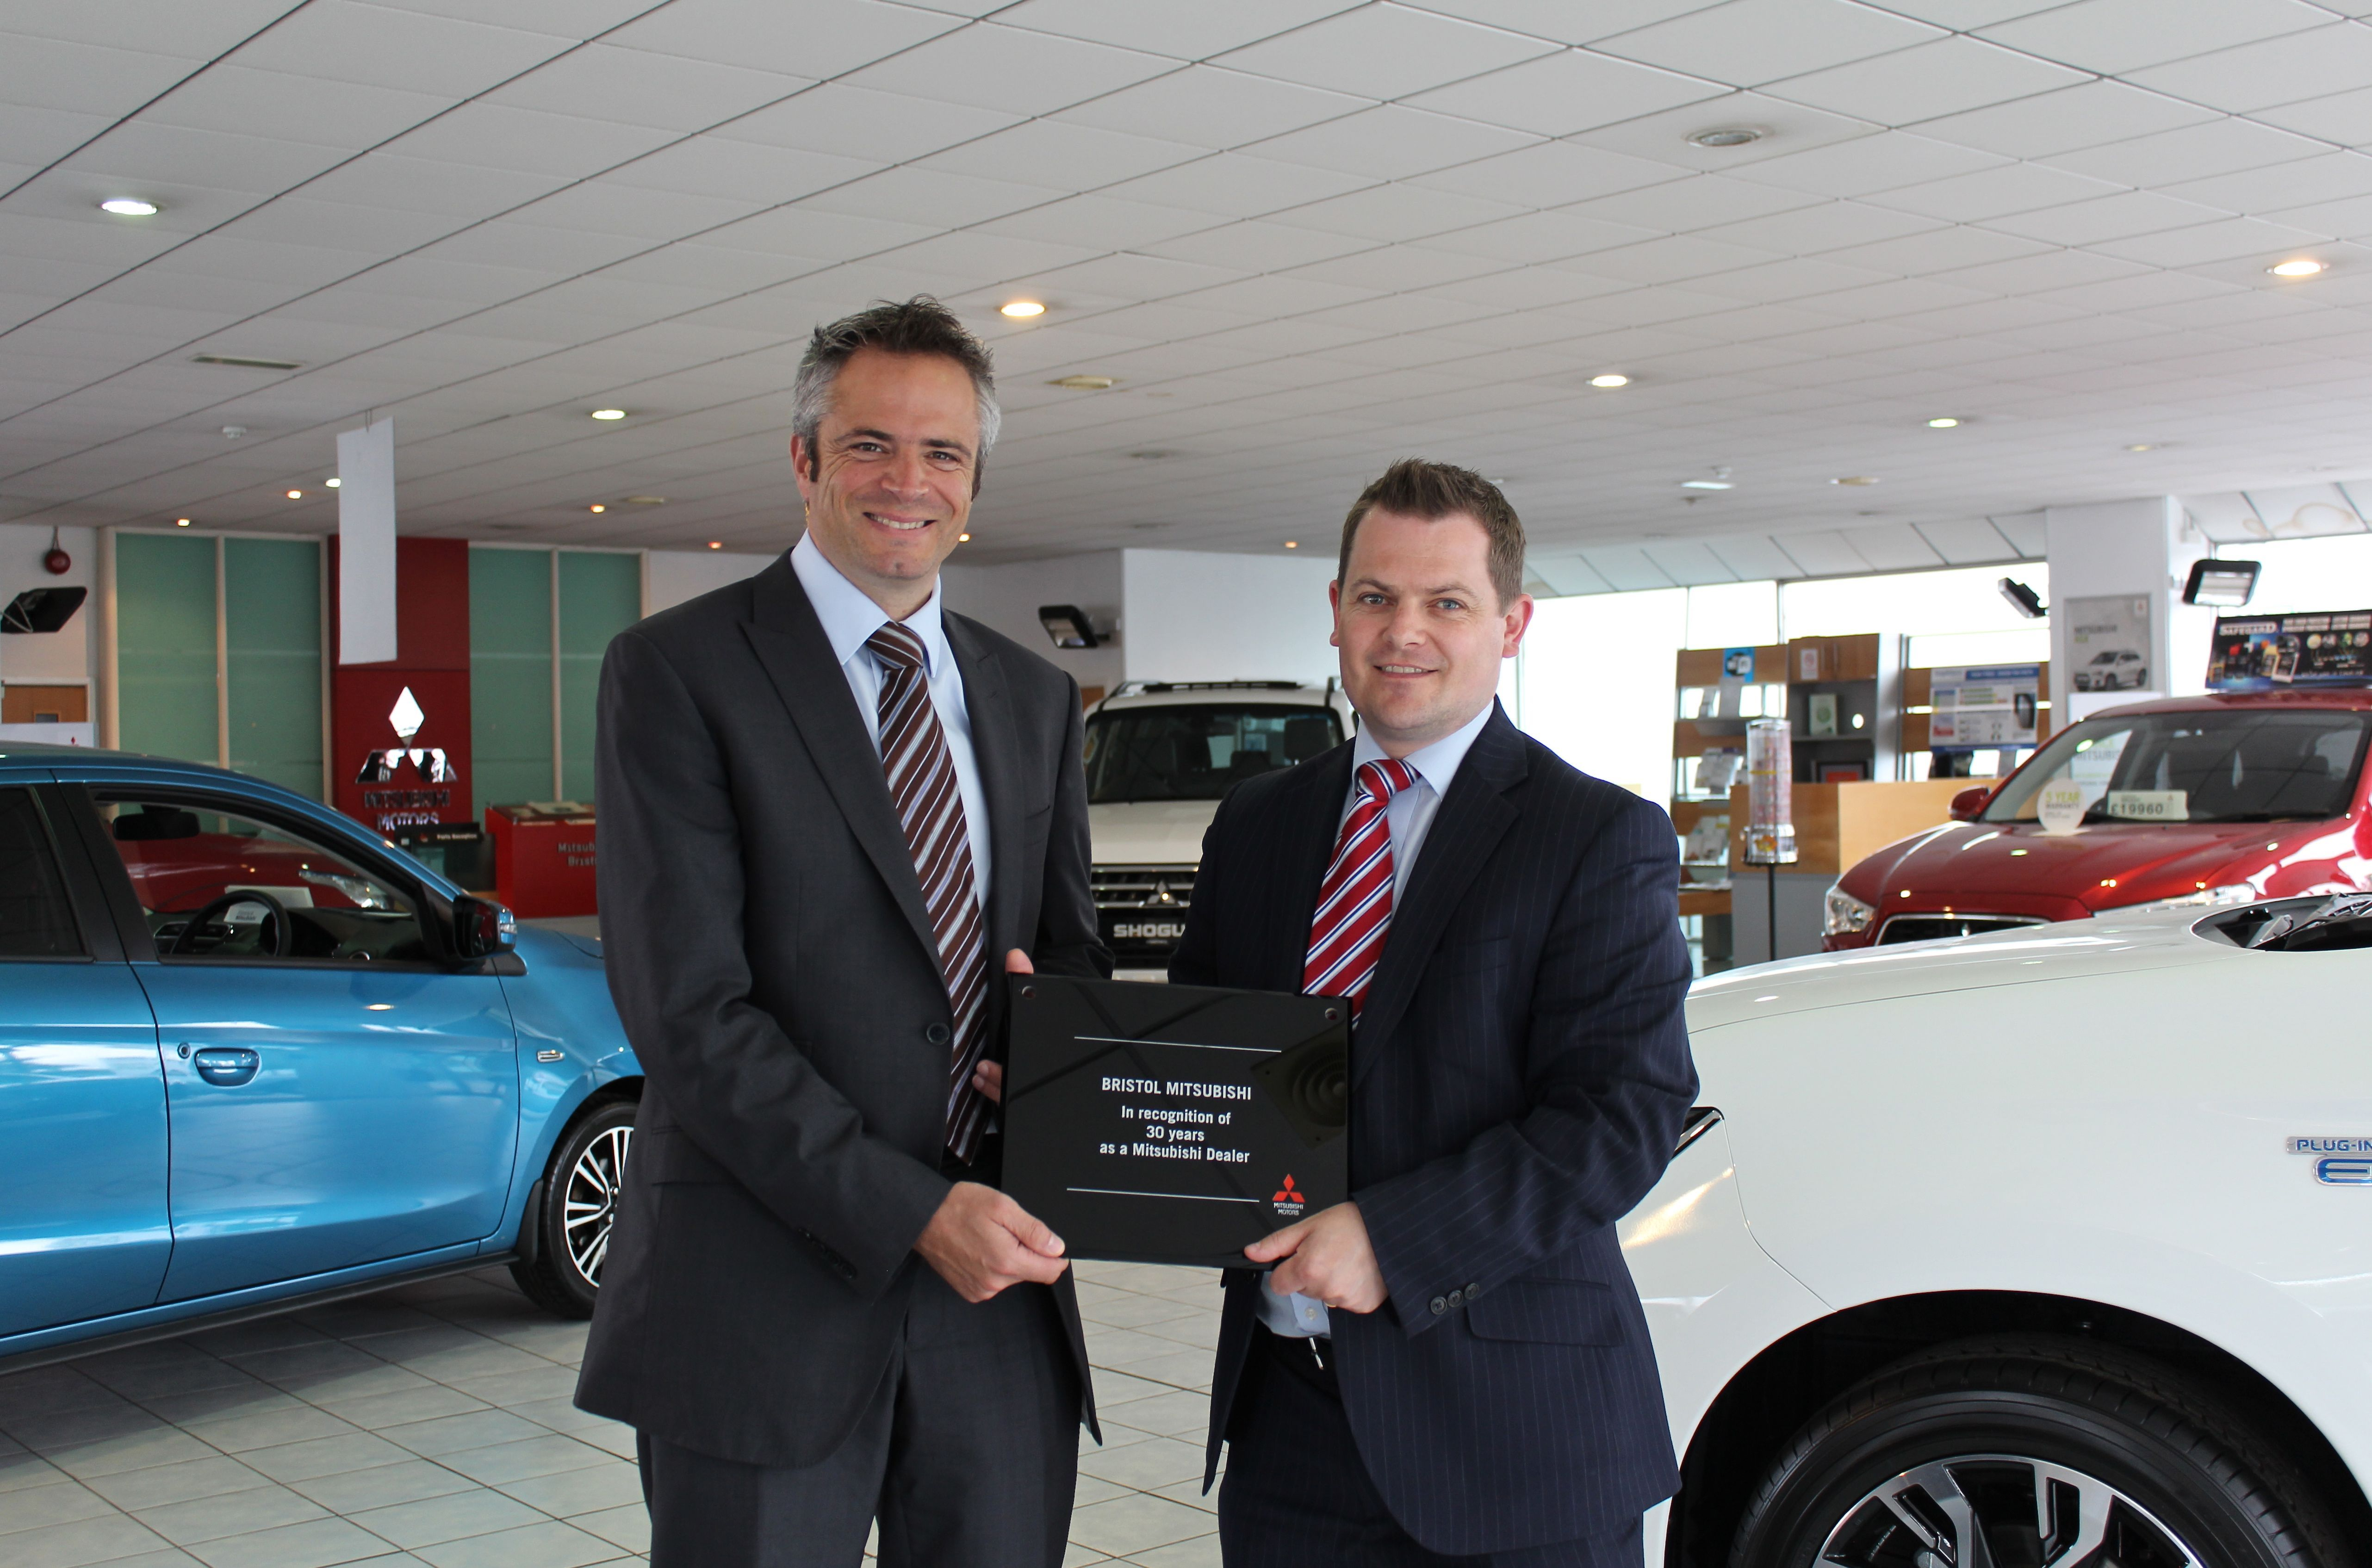 CCR Bristol Mitsubishi honoured for reaching 30-year landmark